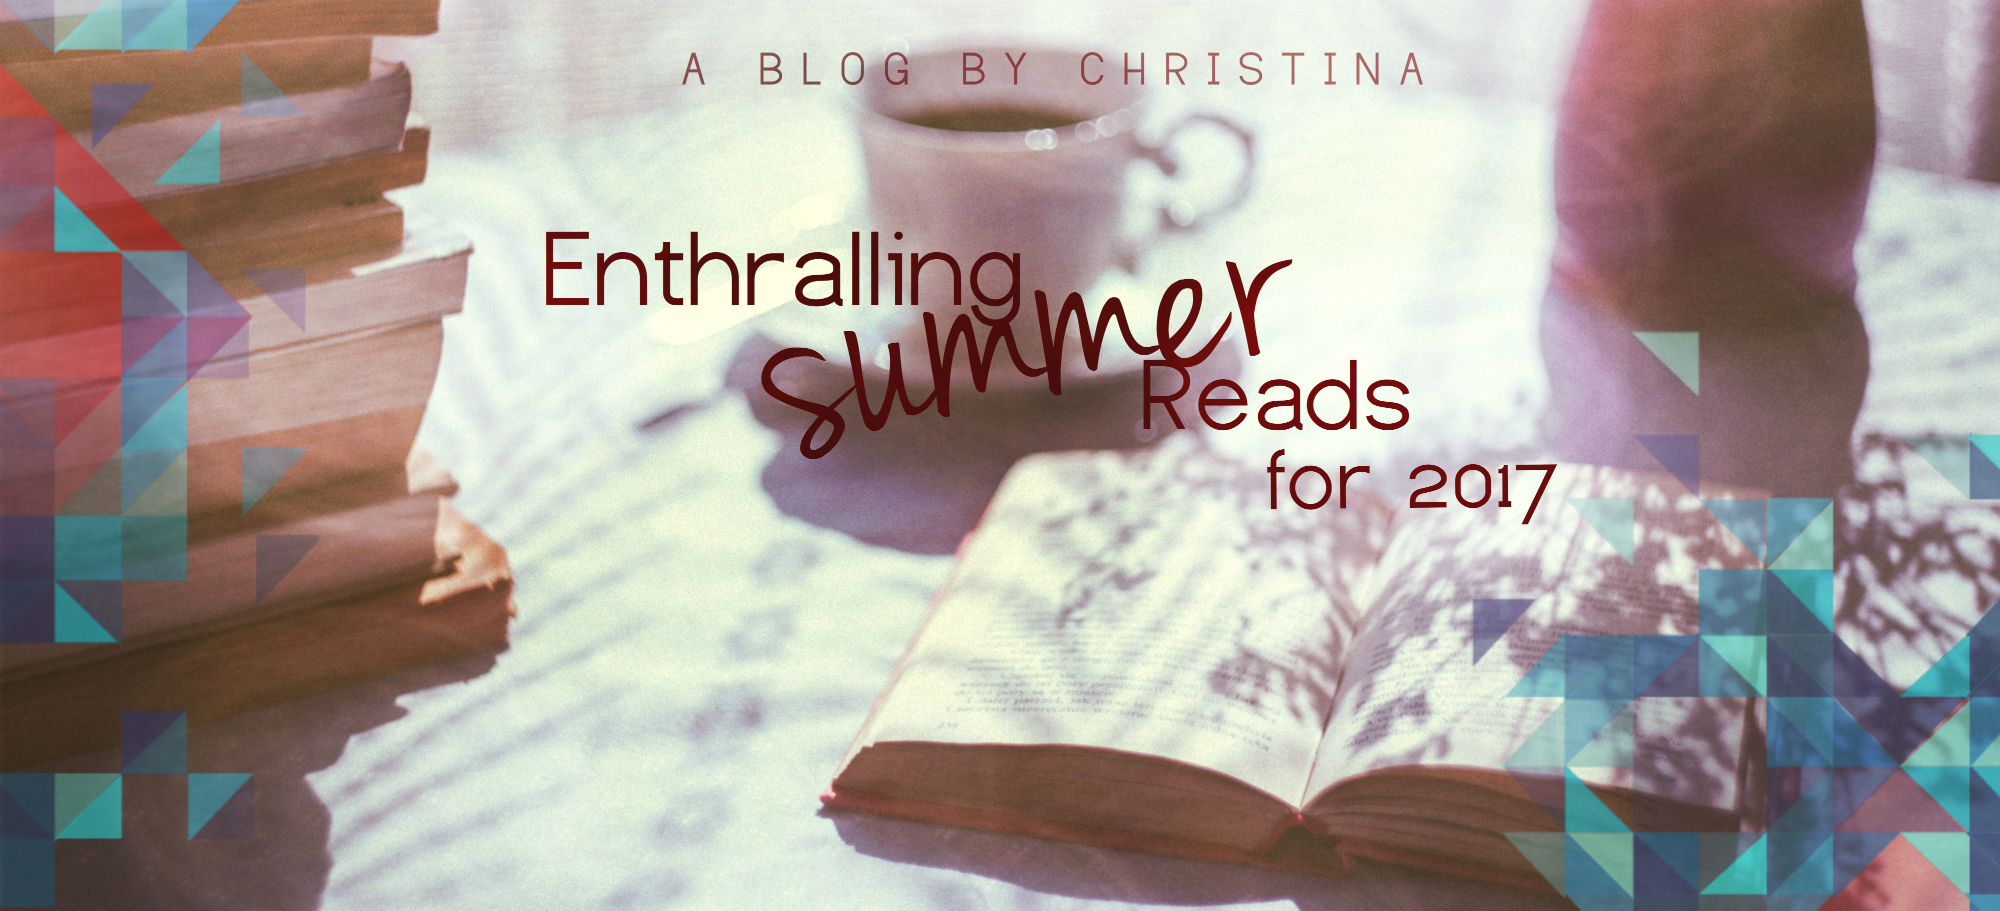 Enthralling Summer Reads 2017